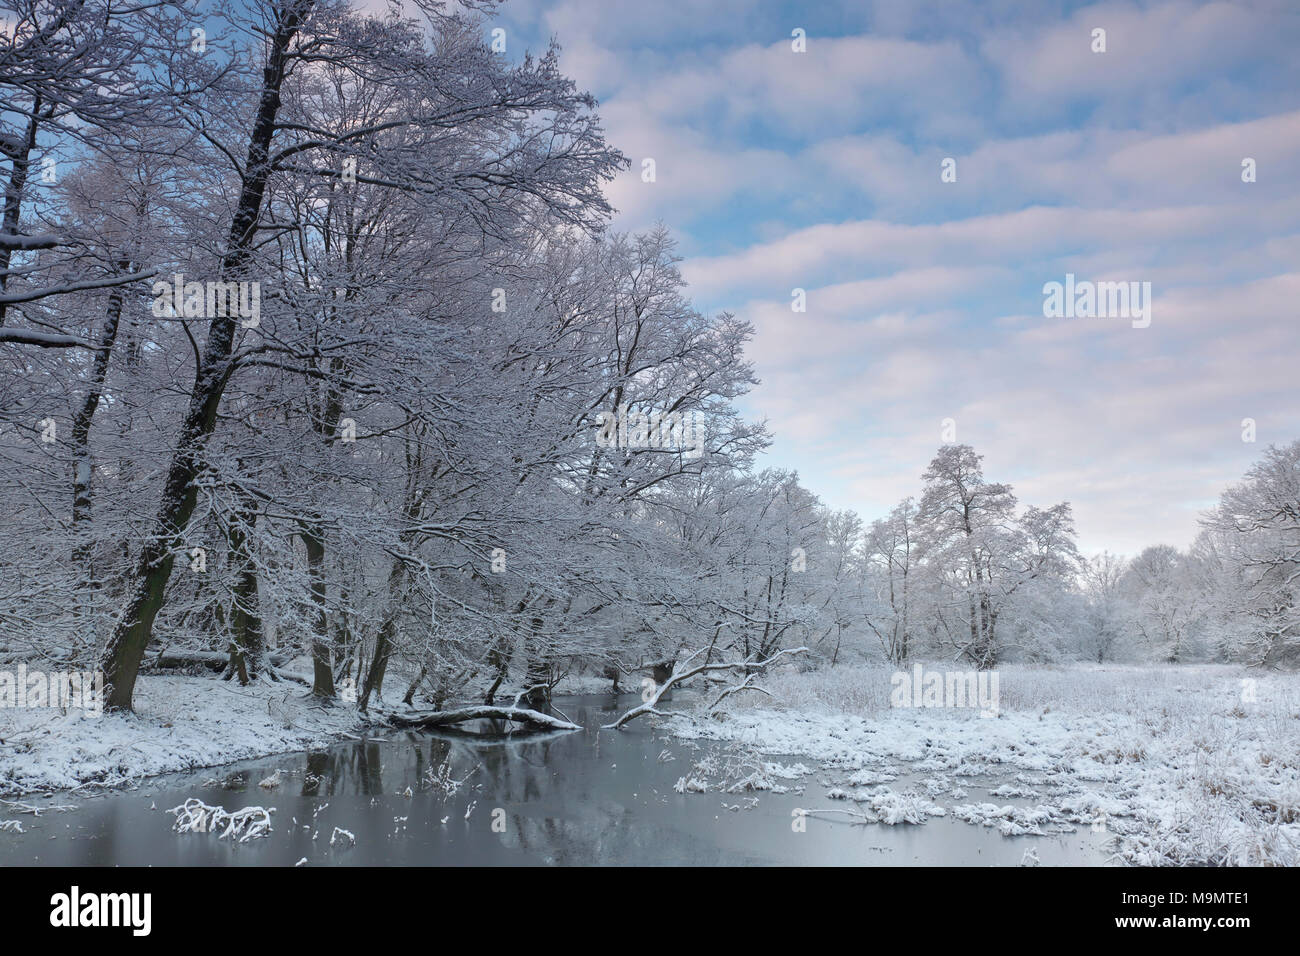 Wetland landscape with snow-covered trees in winter, Biosphere Reserve Middle Elbe, Dessau-Roßlau, Saxony-Anhalt, Germany - Stock Image